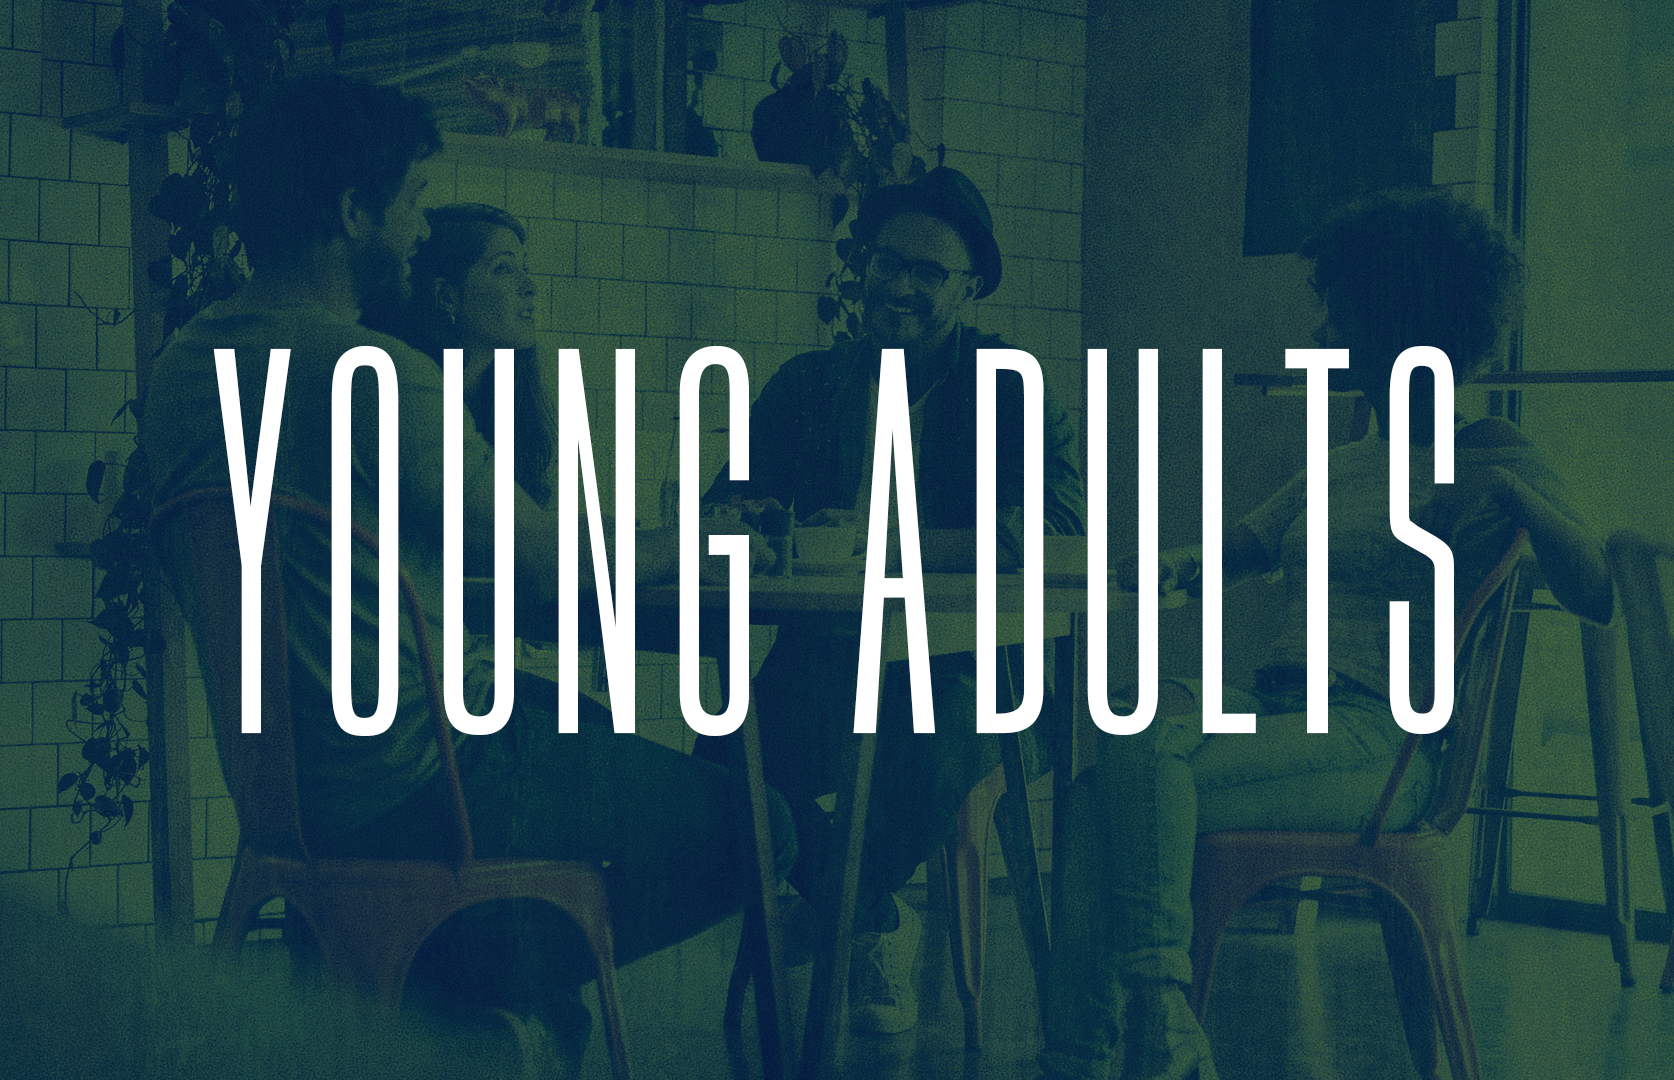 YoungAdult_event image